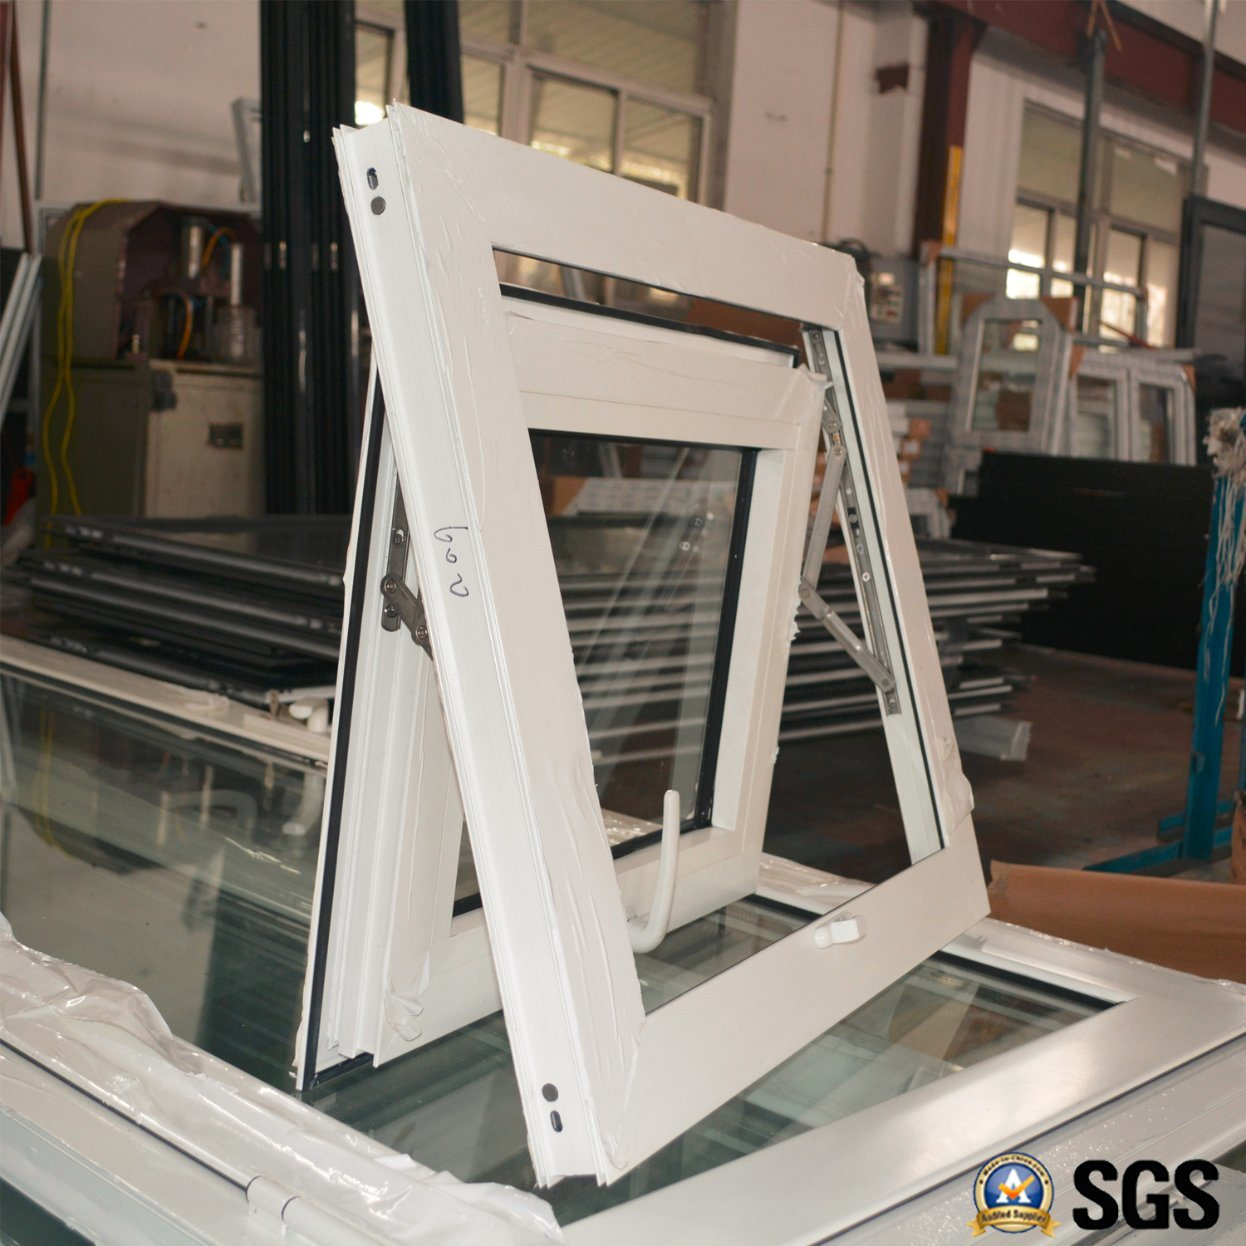 High Quality Powder Coated Aluminum Profile Awning Window, Aluminium Window, Aluminum Window, Window K05023